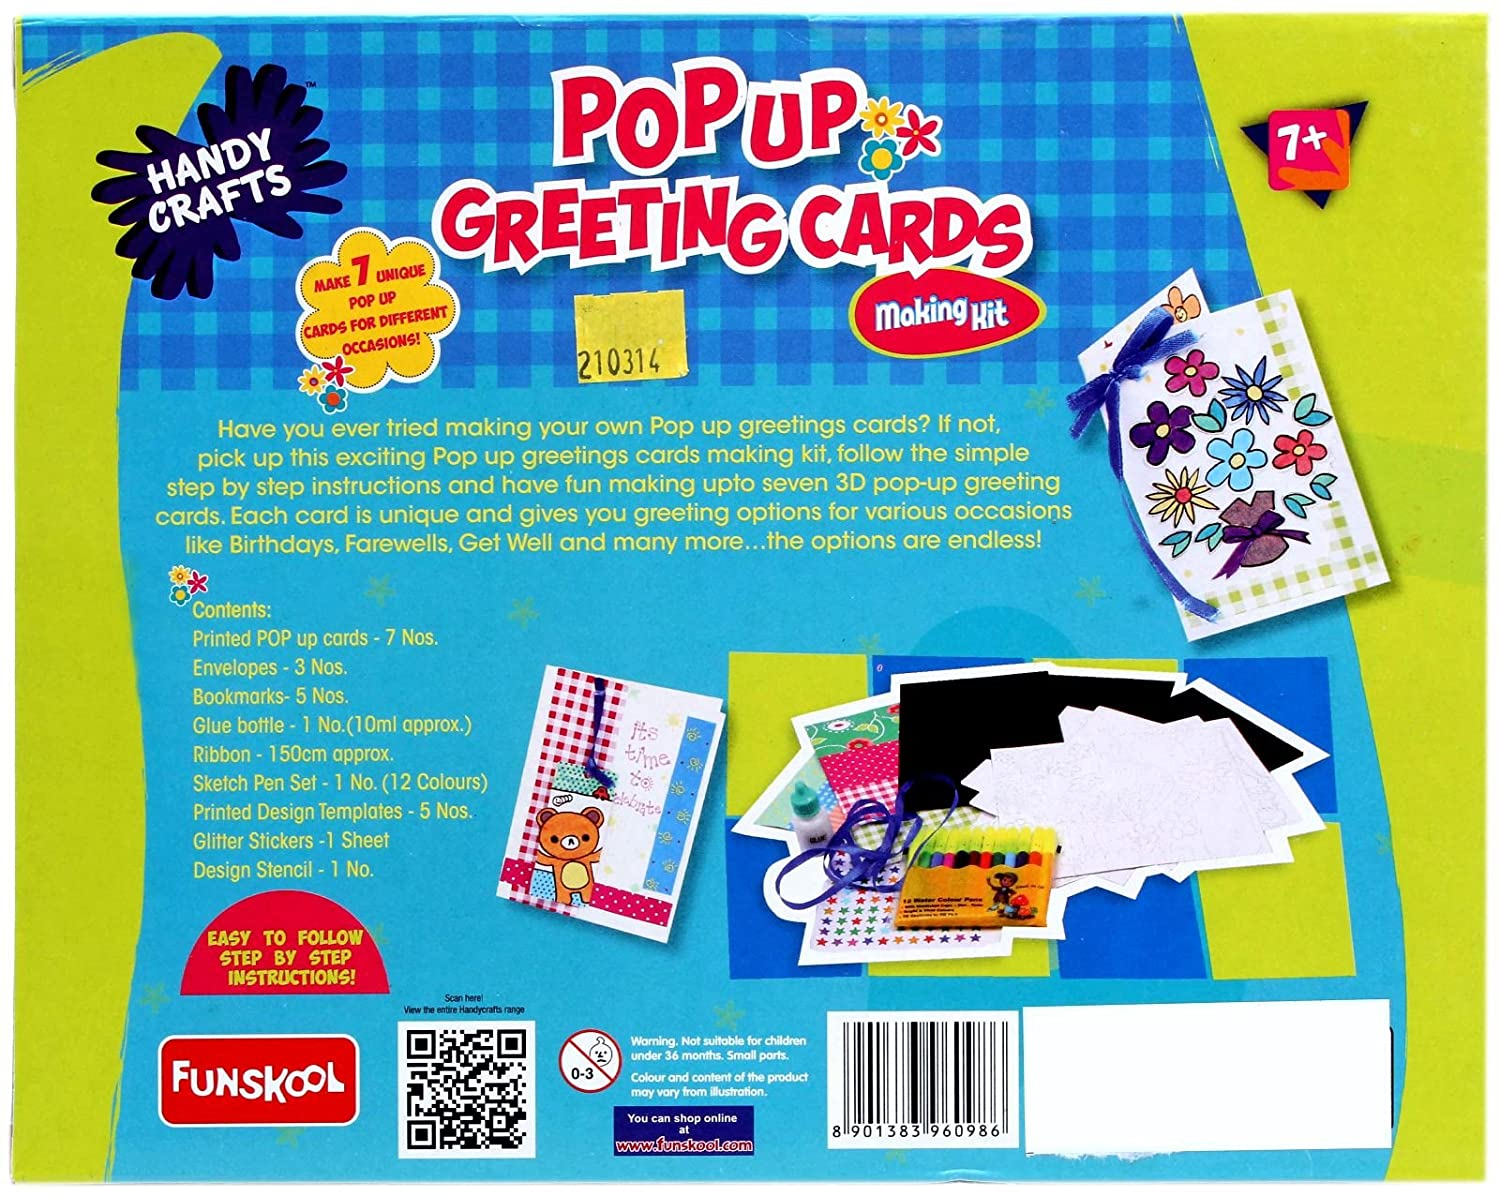 Funskool handy crafts pop up greeting cards multi color amazon funskool handy crafts pop up greeting cards multi color amazon toys games kristyandbryce Image collections